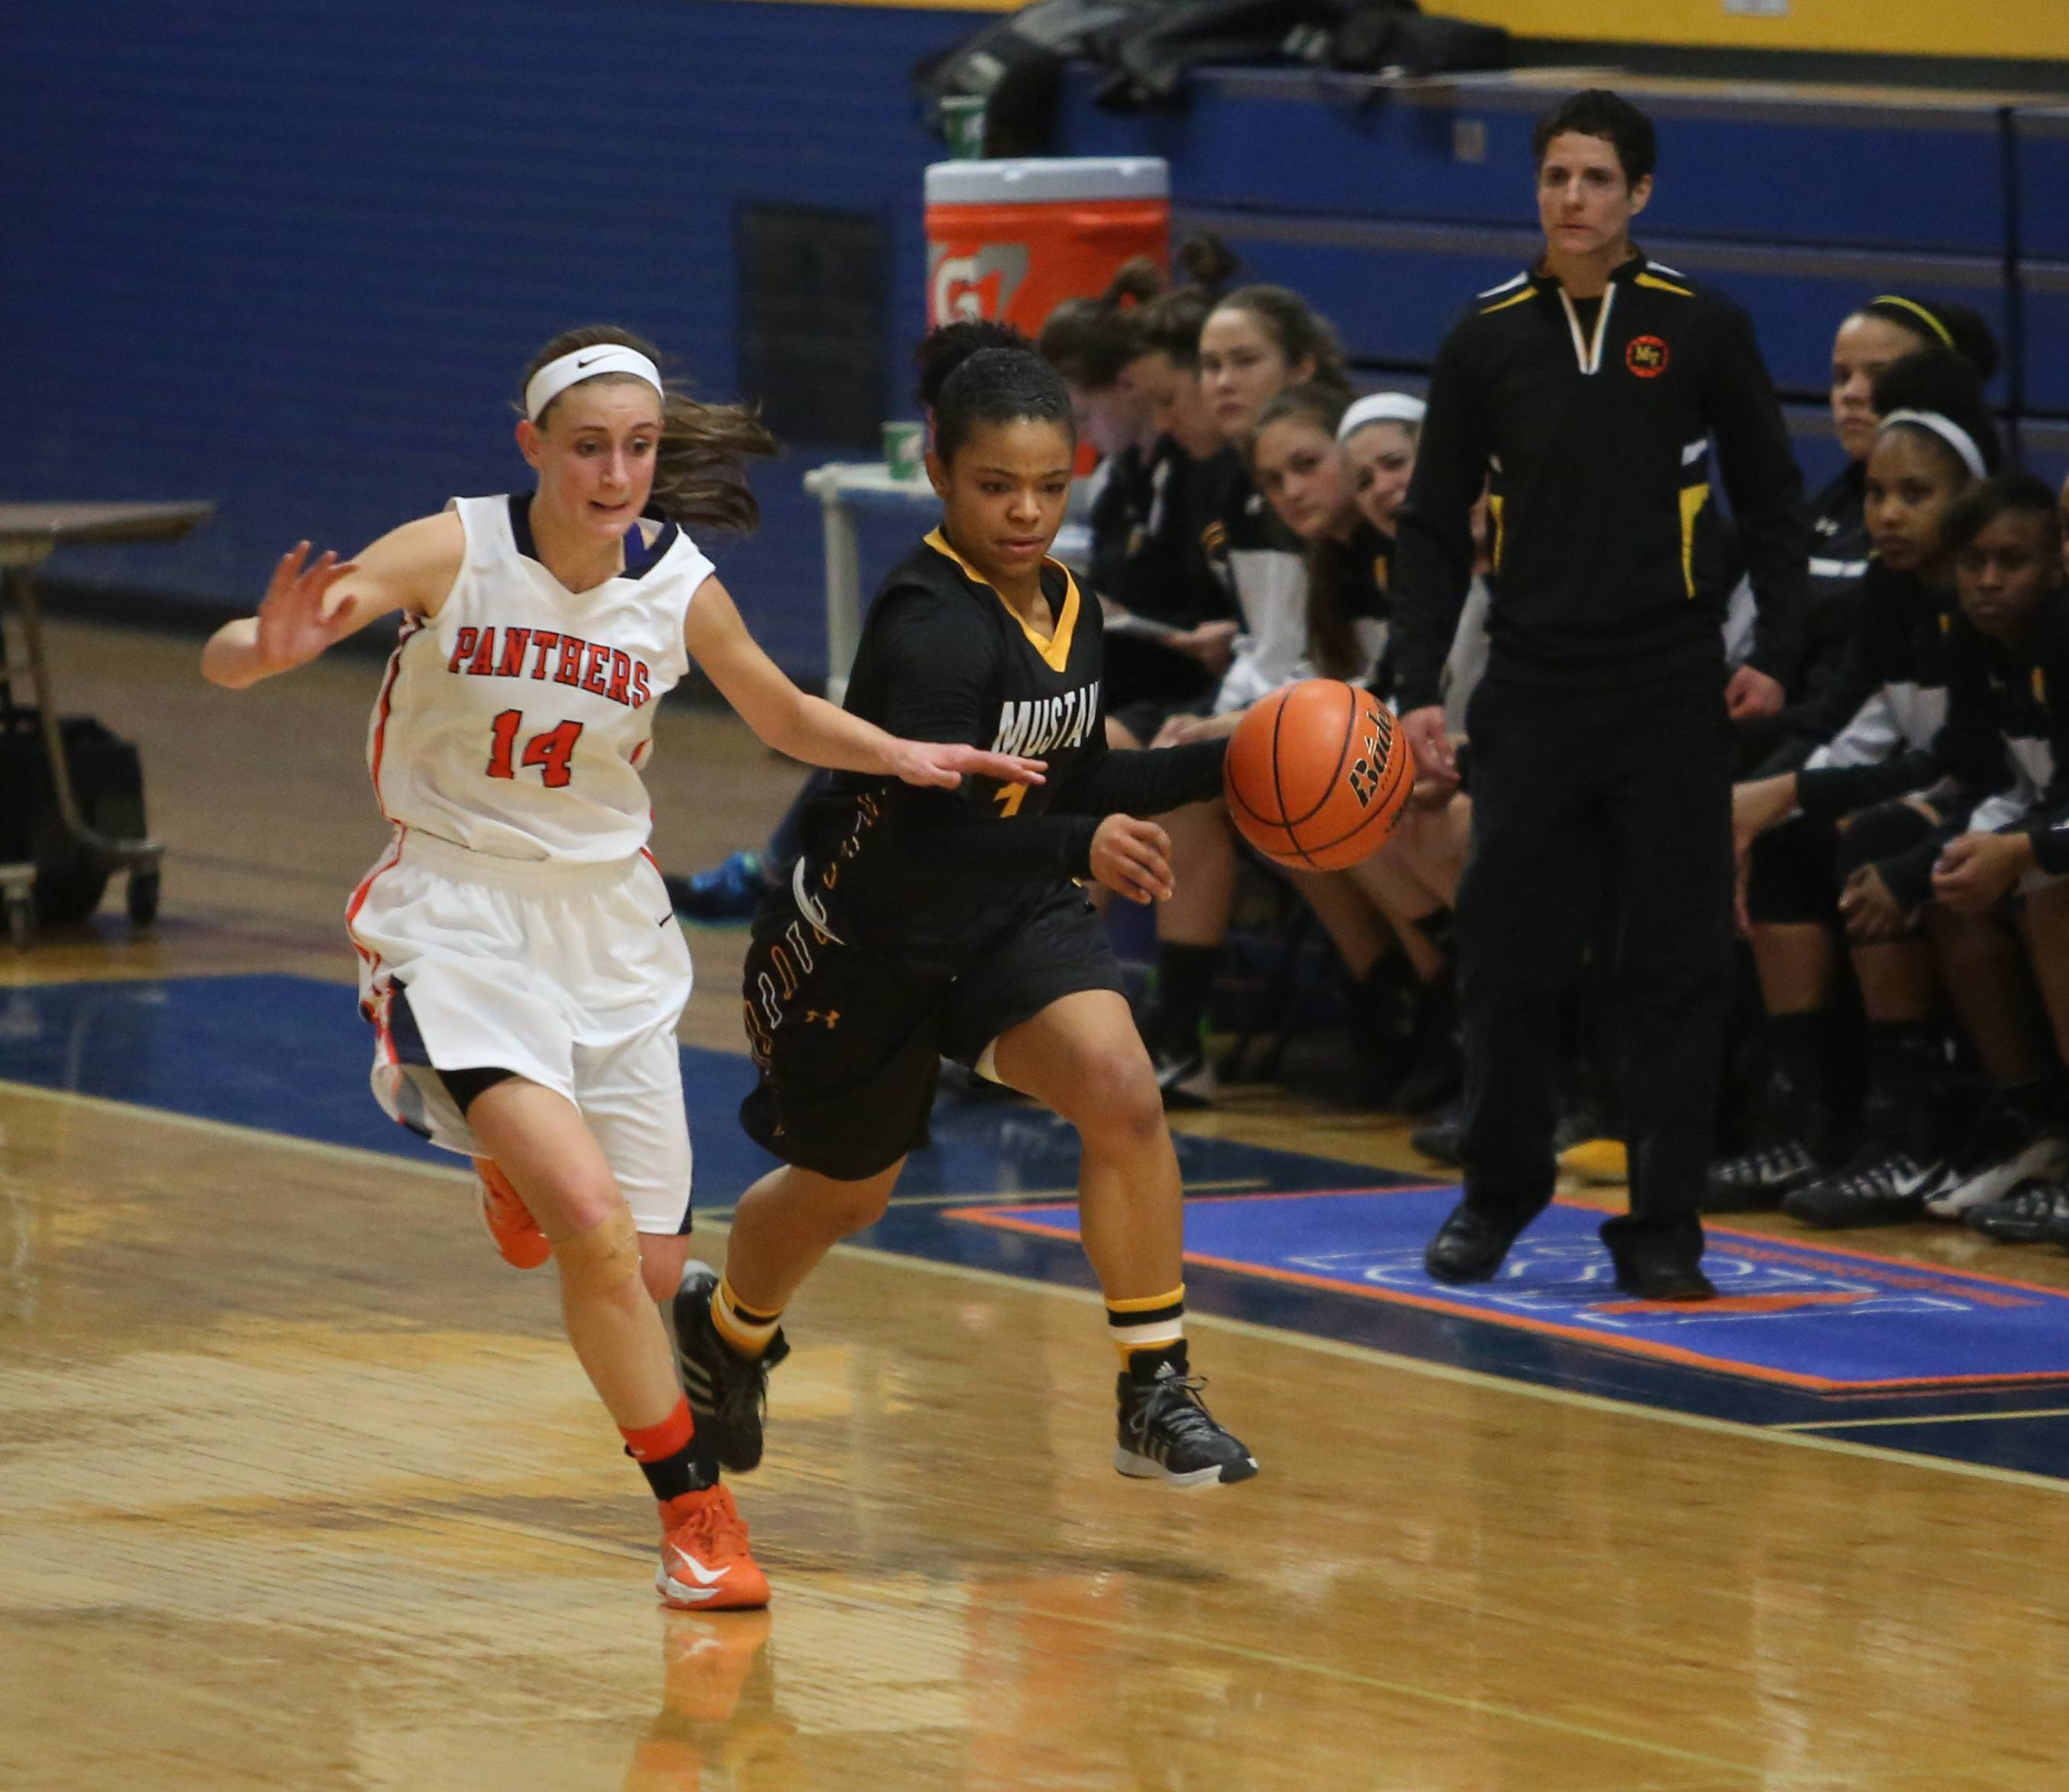 Images: Metea Valley vs. Oswego girls basketball